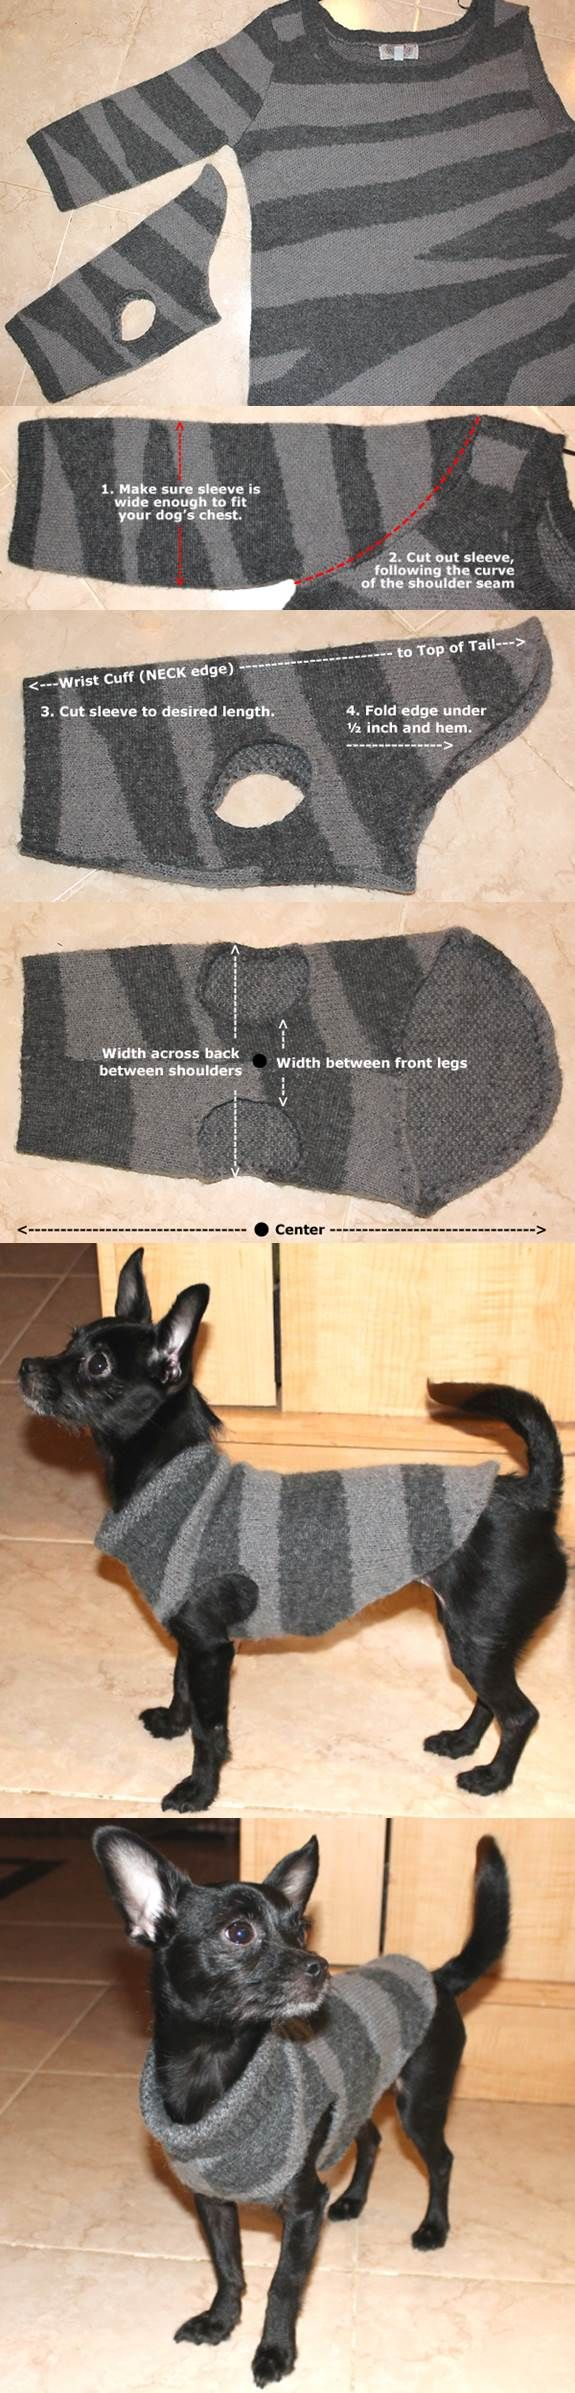 DIY Dog Sweater from a Used Sweater Sleeve 2 | Get Your Craft On ...